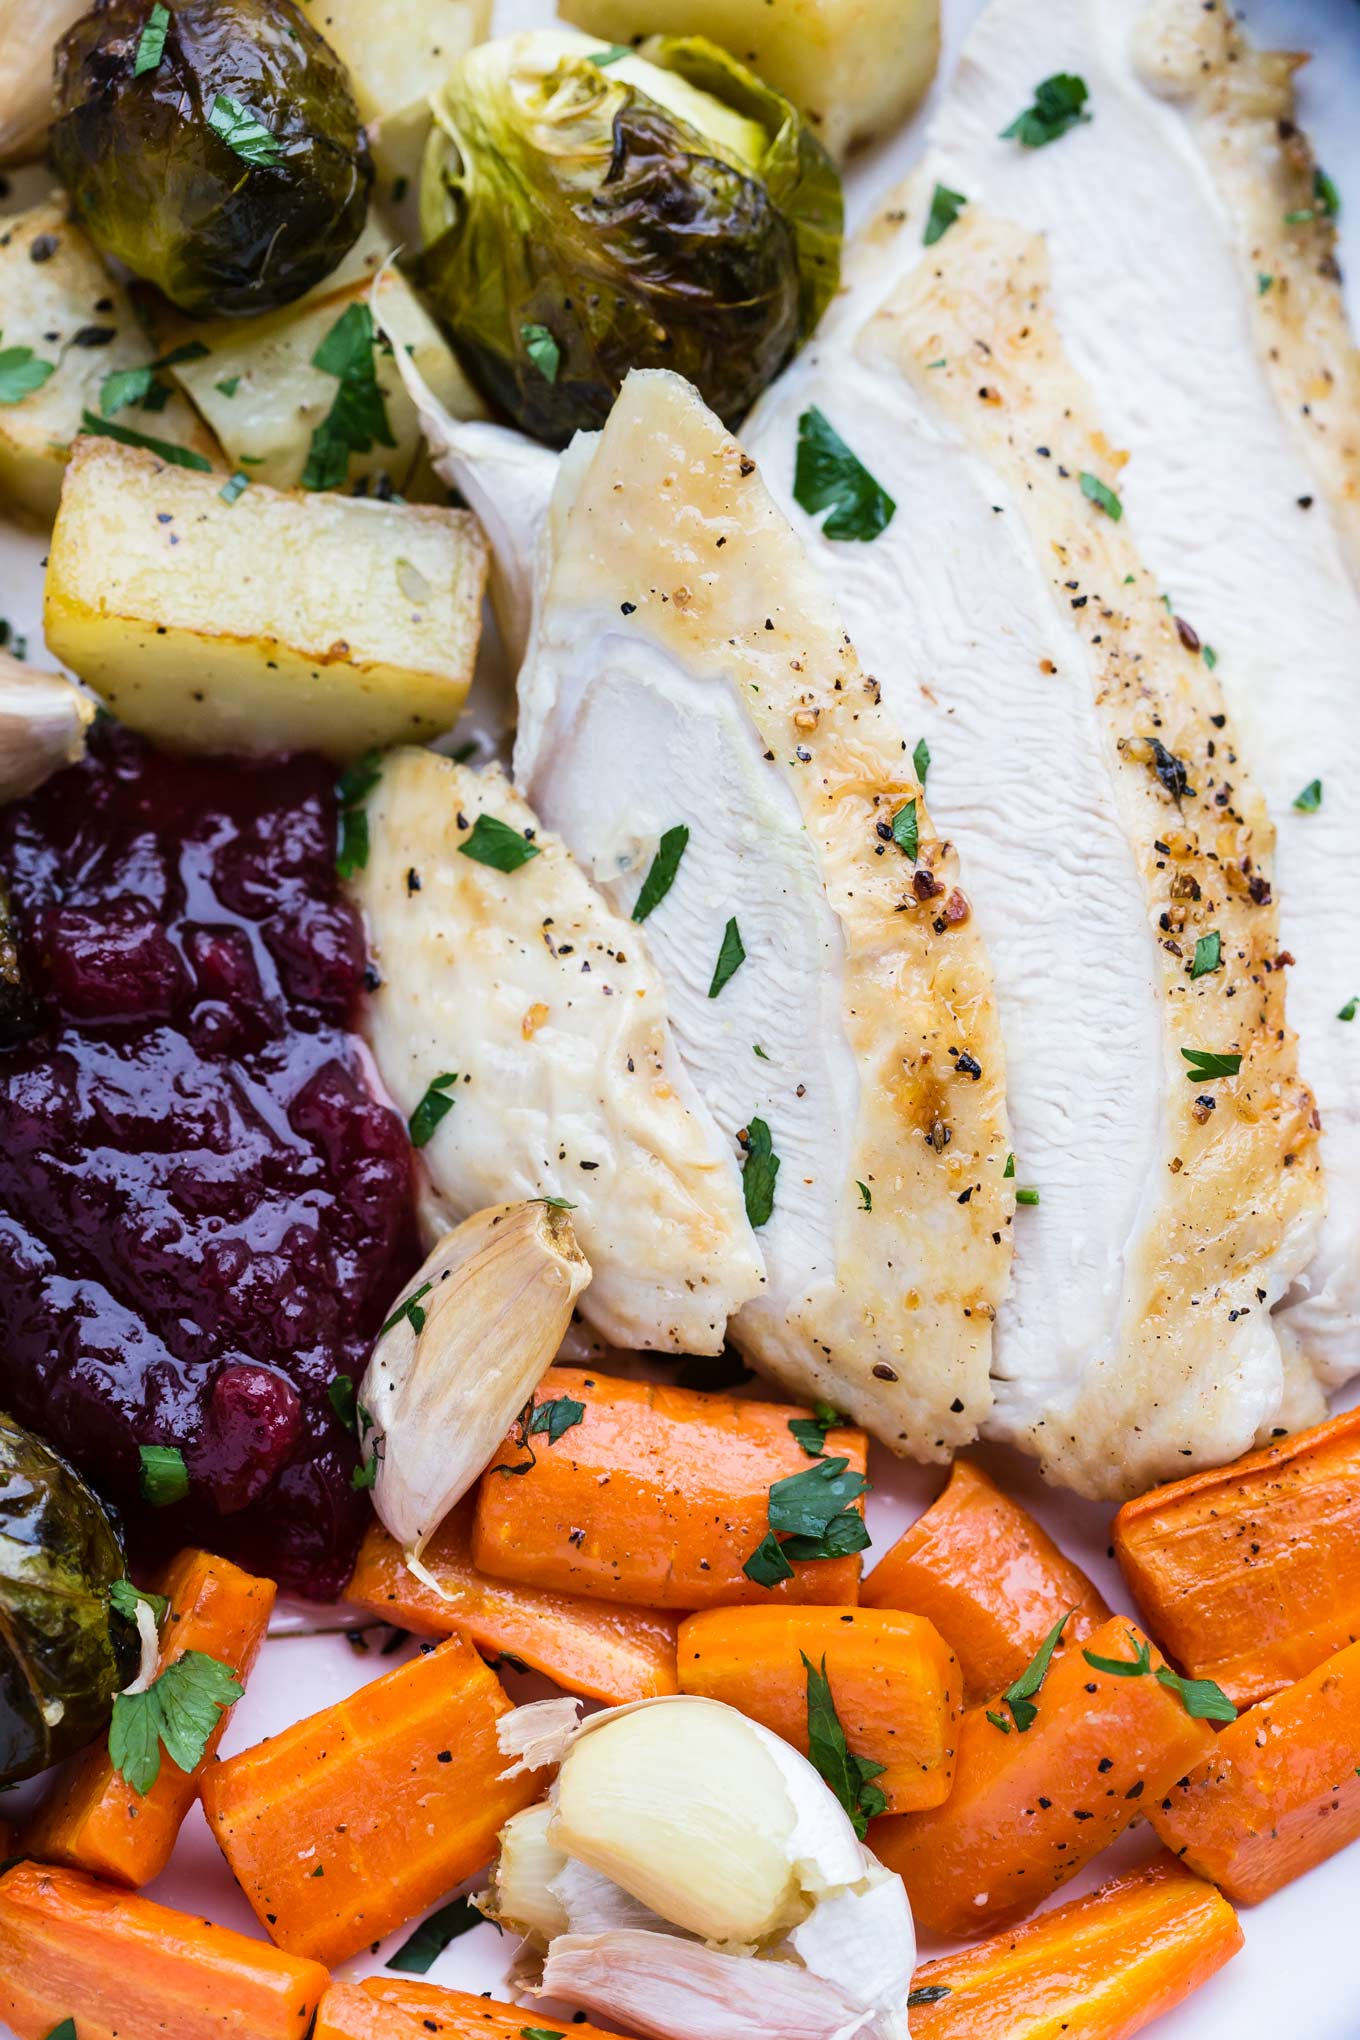 Roasted turkey breast and roasted vegetables.